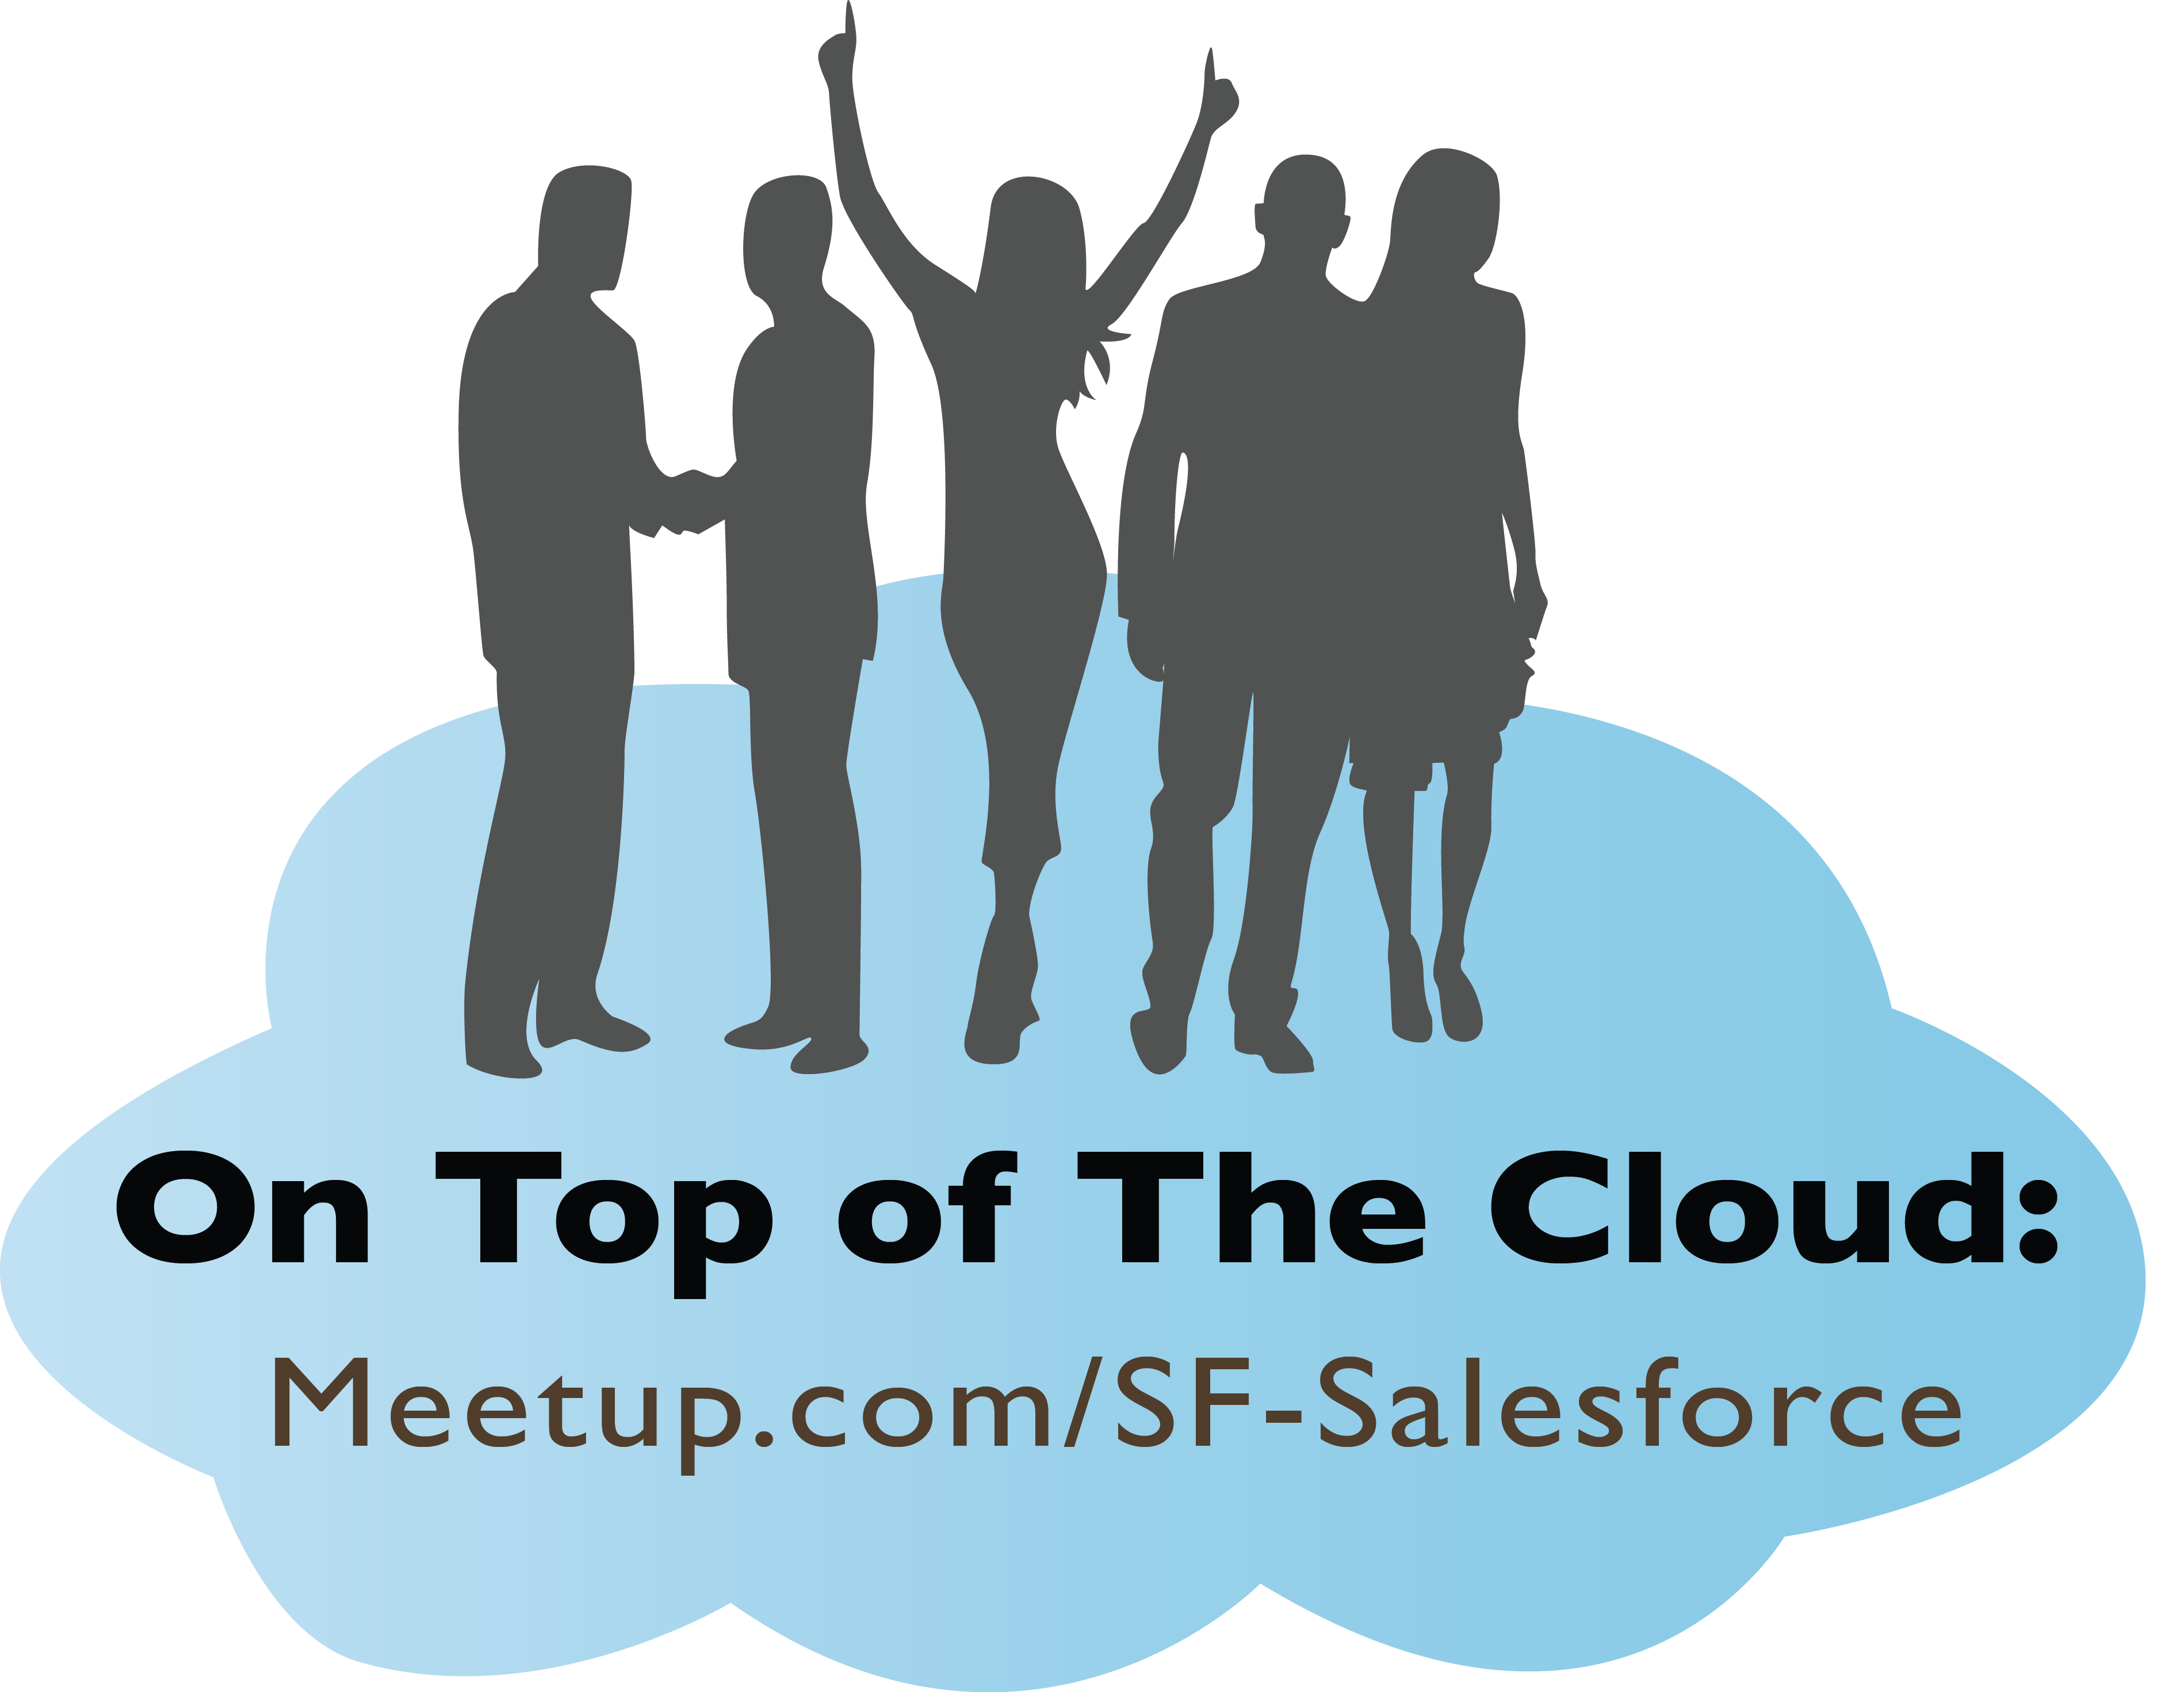 Salesforce.com Meetup - Meetup.com/SF-Salesforce